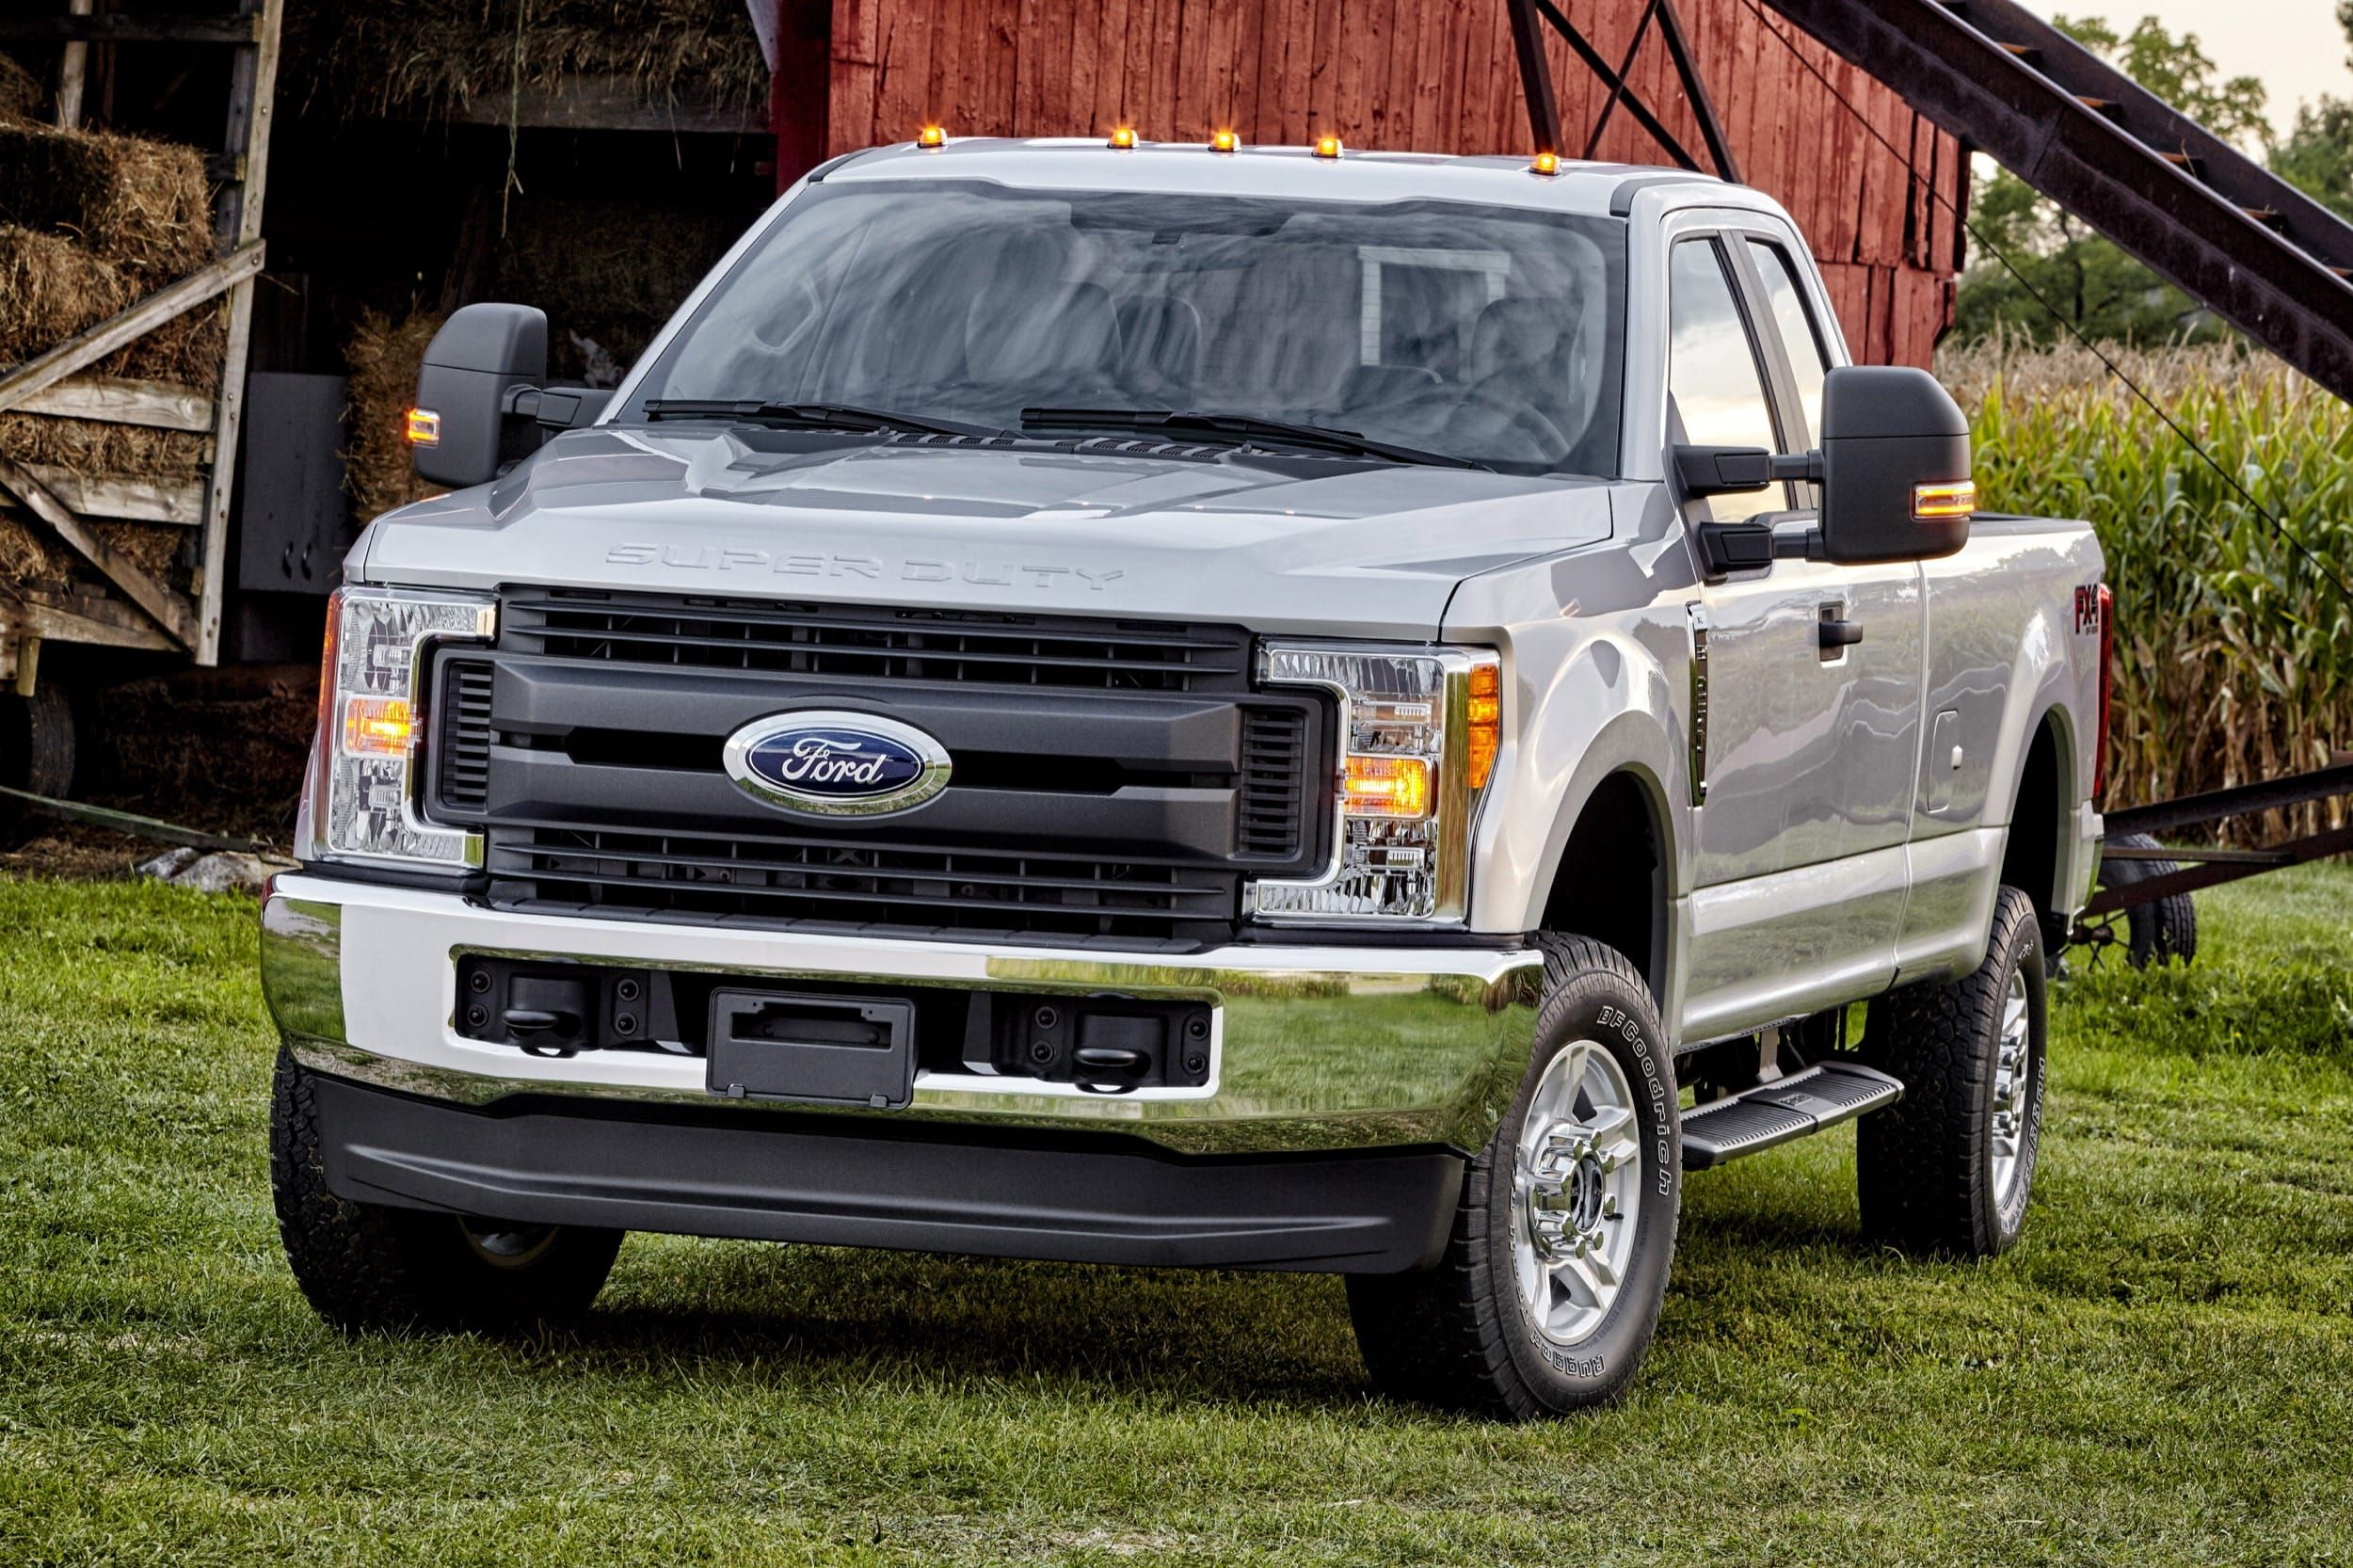 2017 ford f 250 super duty xl images available on veepix com ford